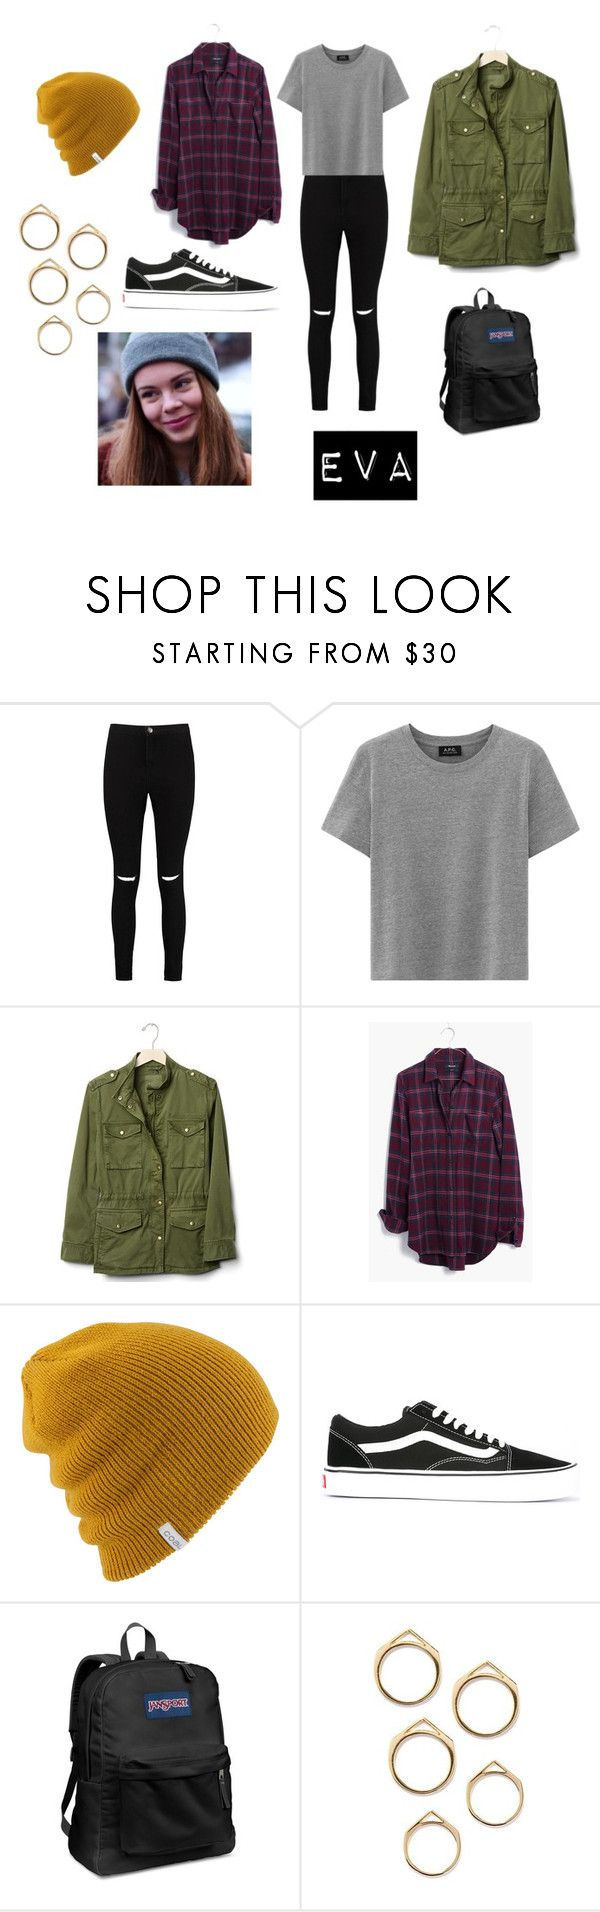 """""""SKAM-- Eva"""" by fatimasboutique ❤ liked on Polyvore featuring Boohoo, Gap, Madewell, Vans and JanSport"""